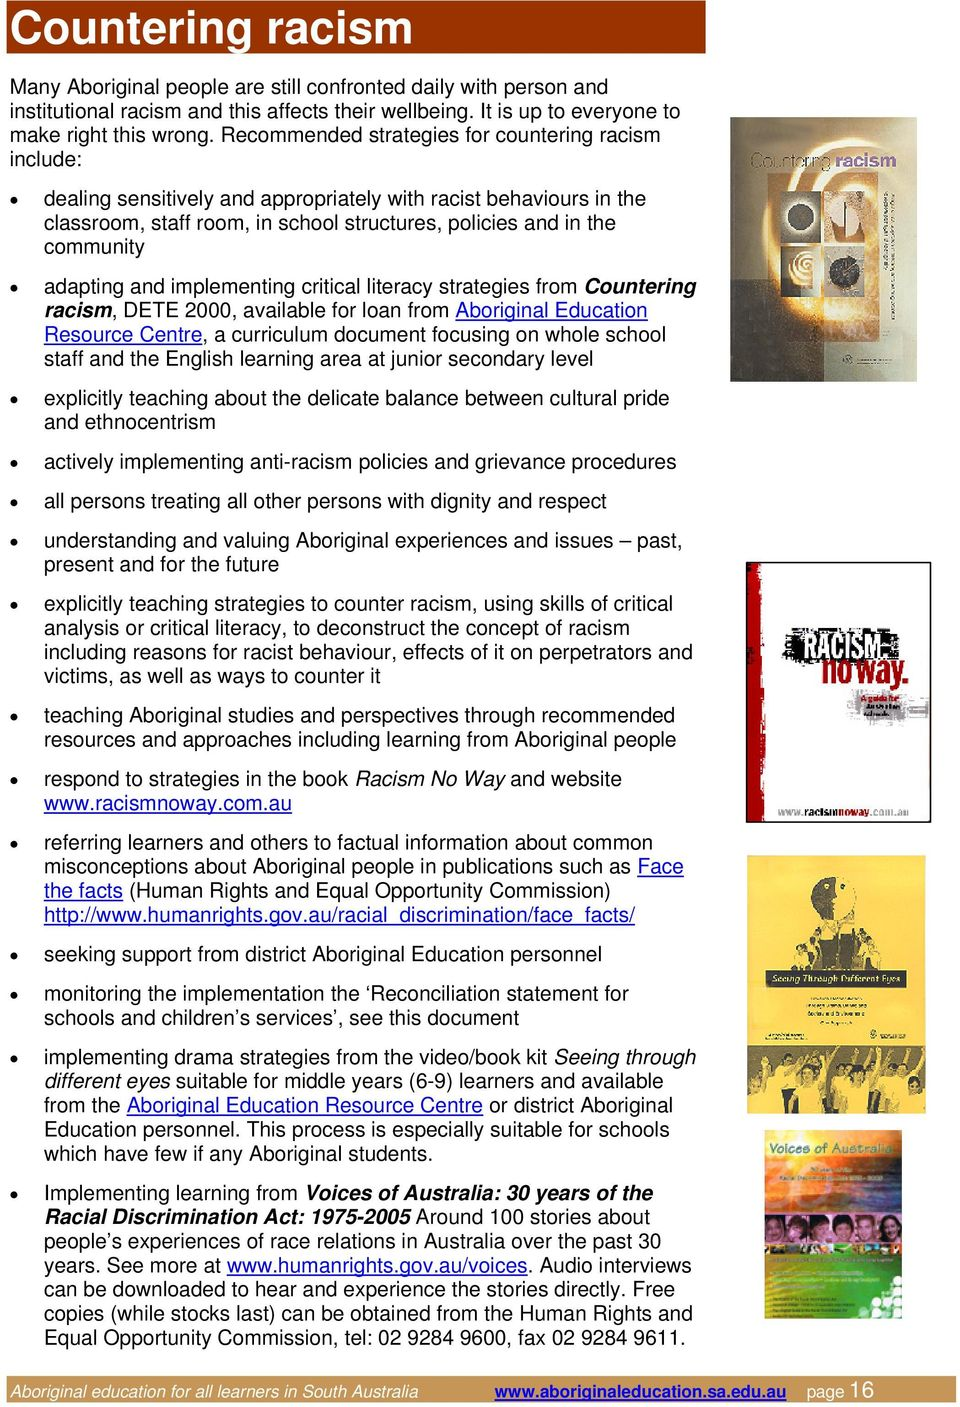 adapting and implementing critical literacy strategies from Countering racism, DETE 2000, available for loan from Aboriginal Education Resource Centre, a curriculum document focusing on whole school